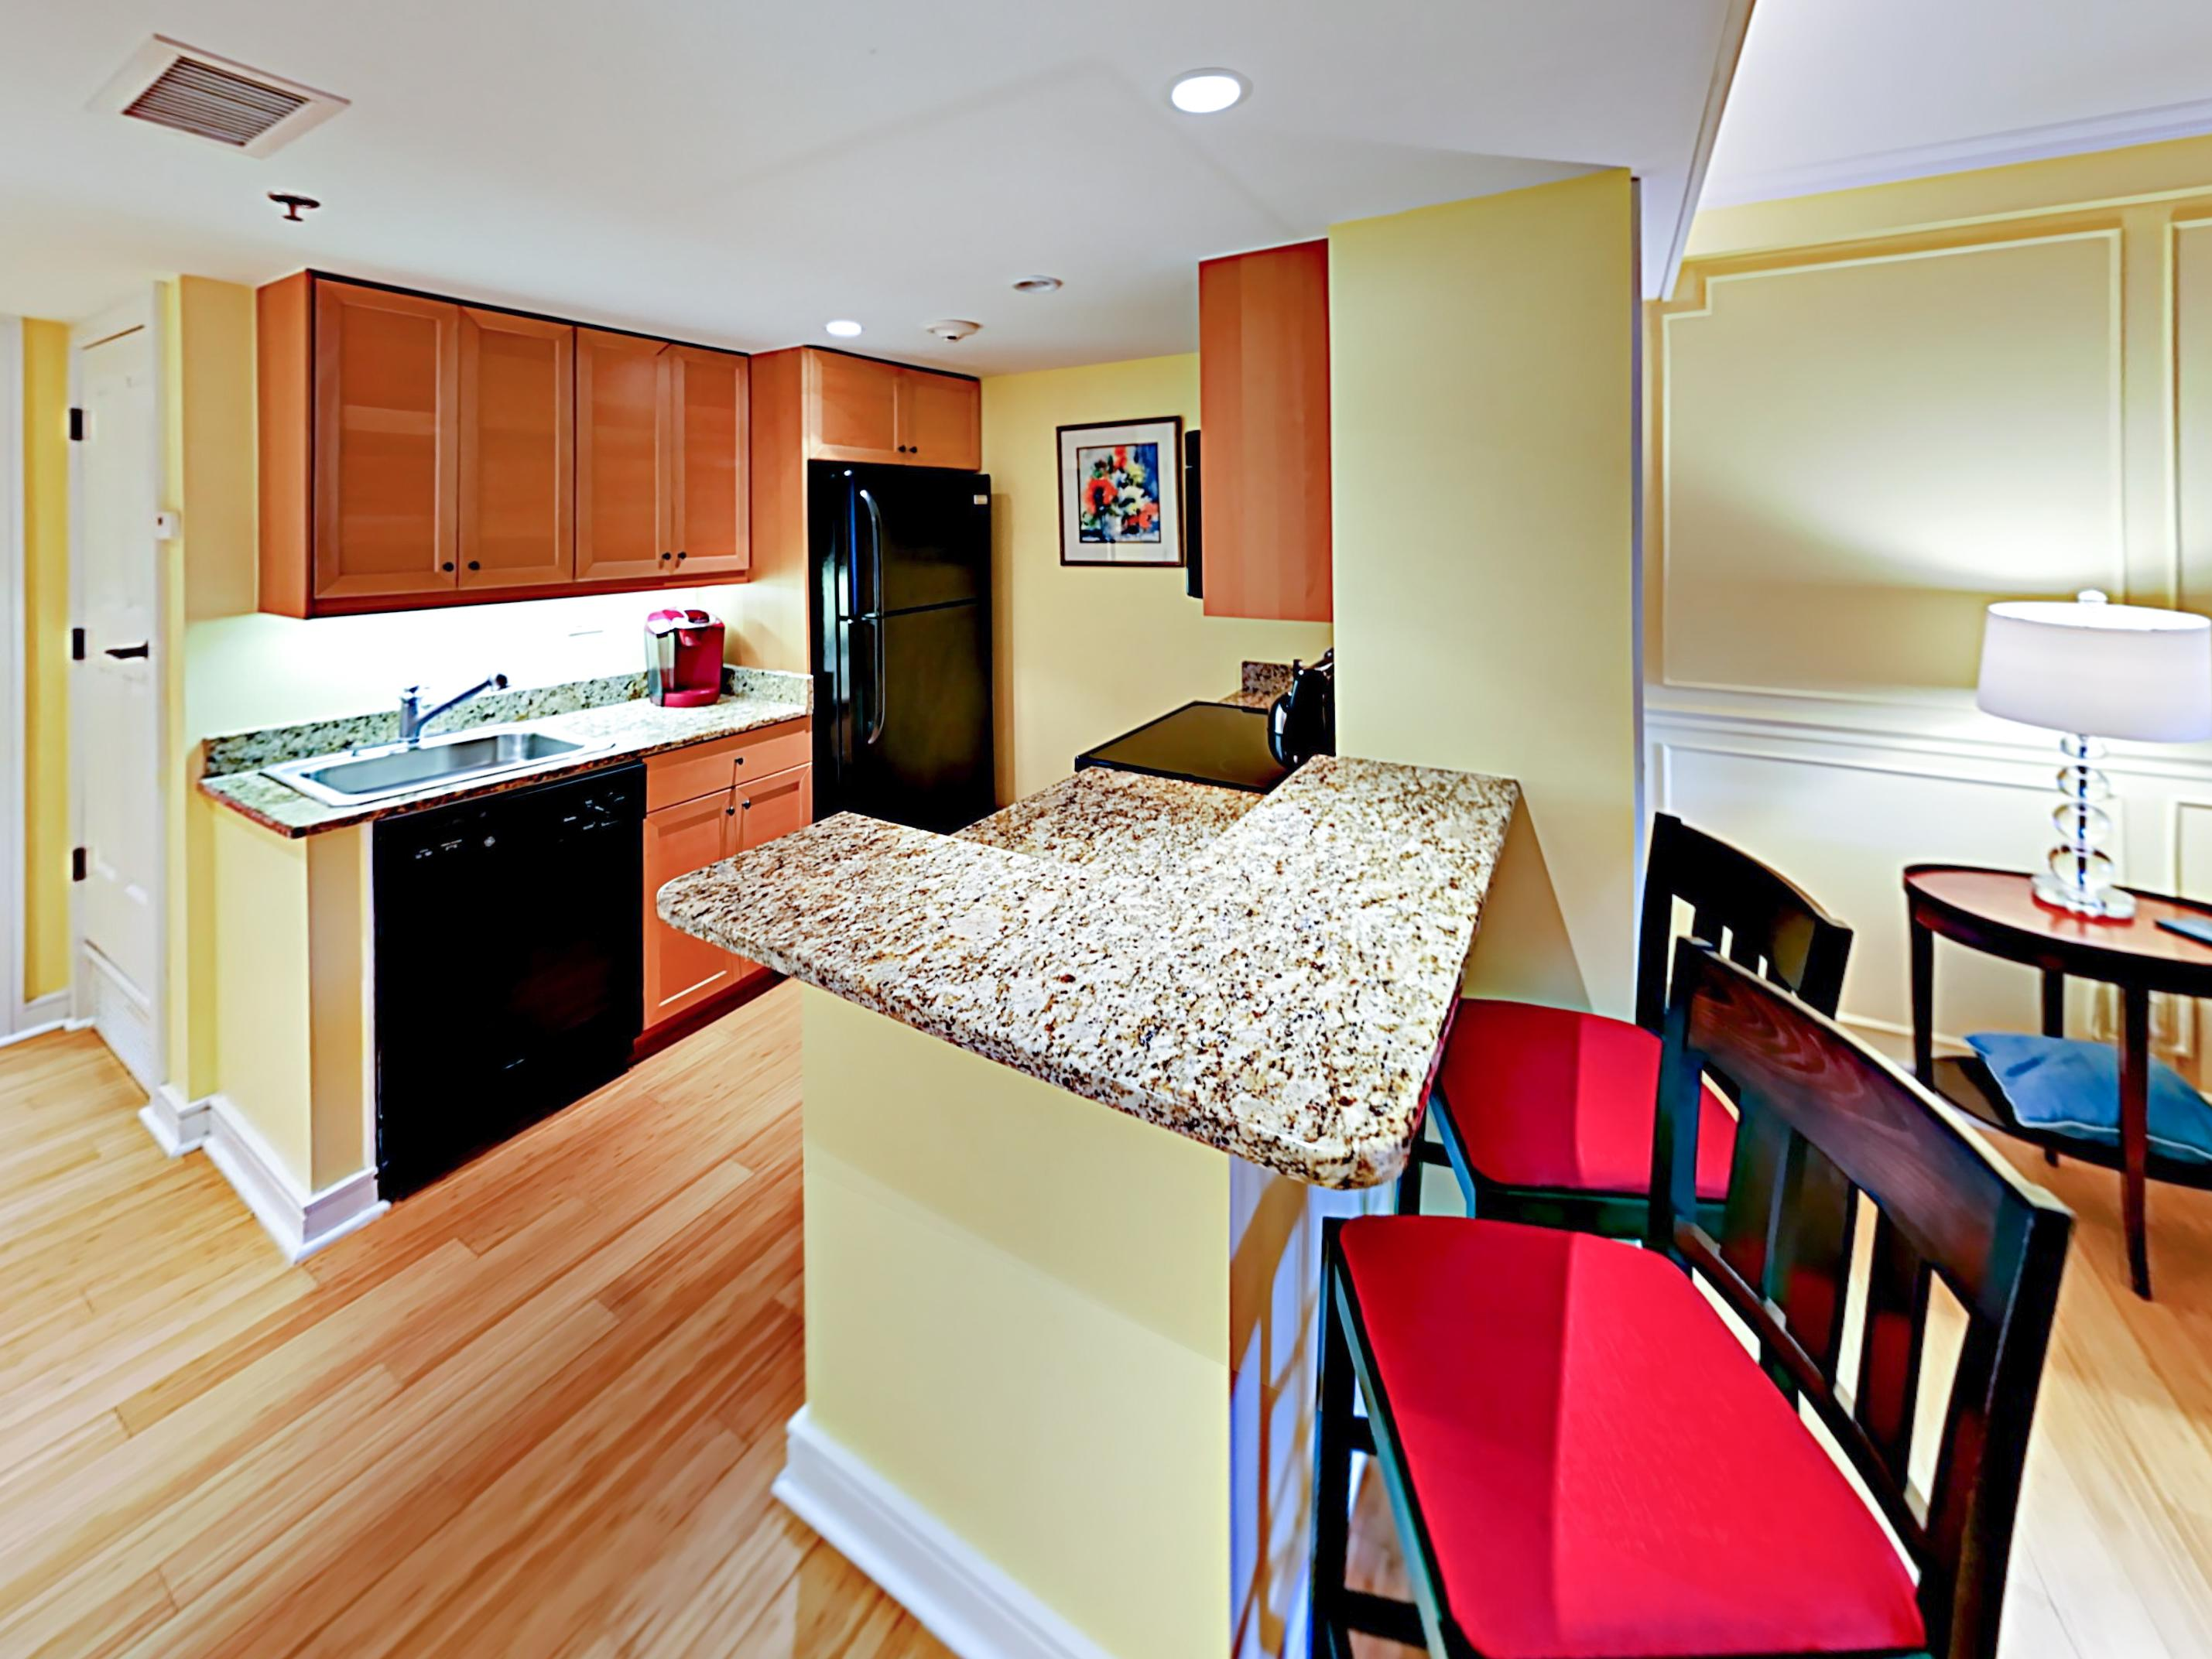 The chef in your group will appreciate the gourmet kitchen, newly updated with granite countertops.